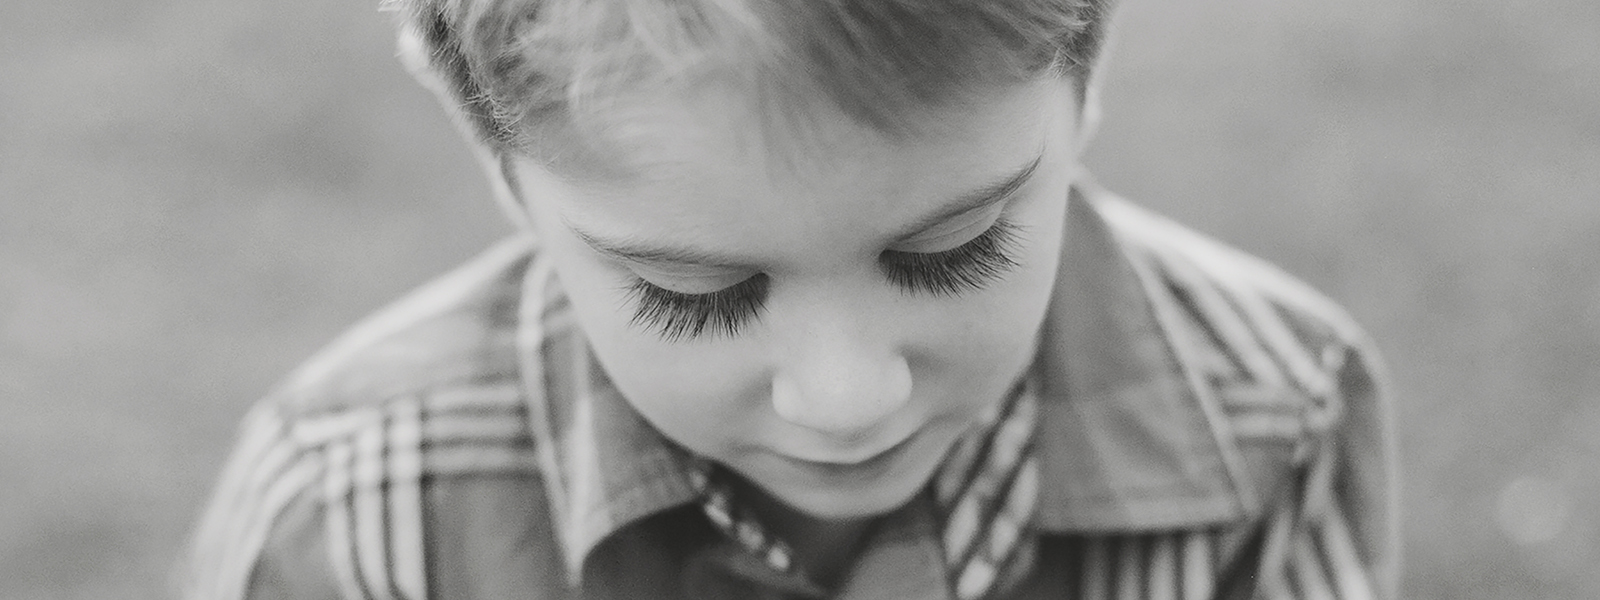 Amanda Reed Photography slideshow image of young boy in close-up